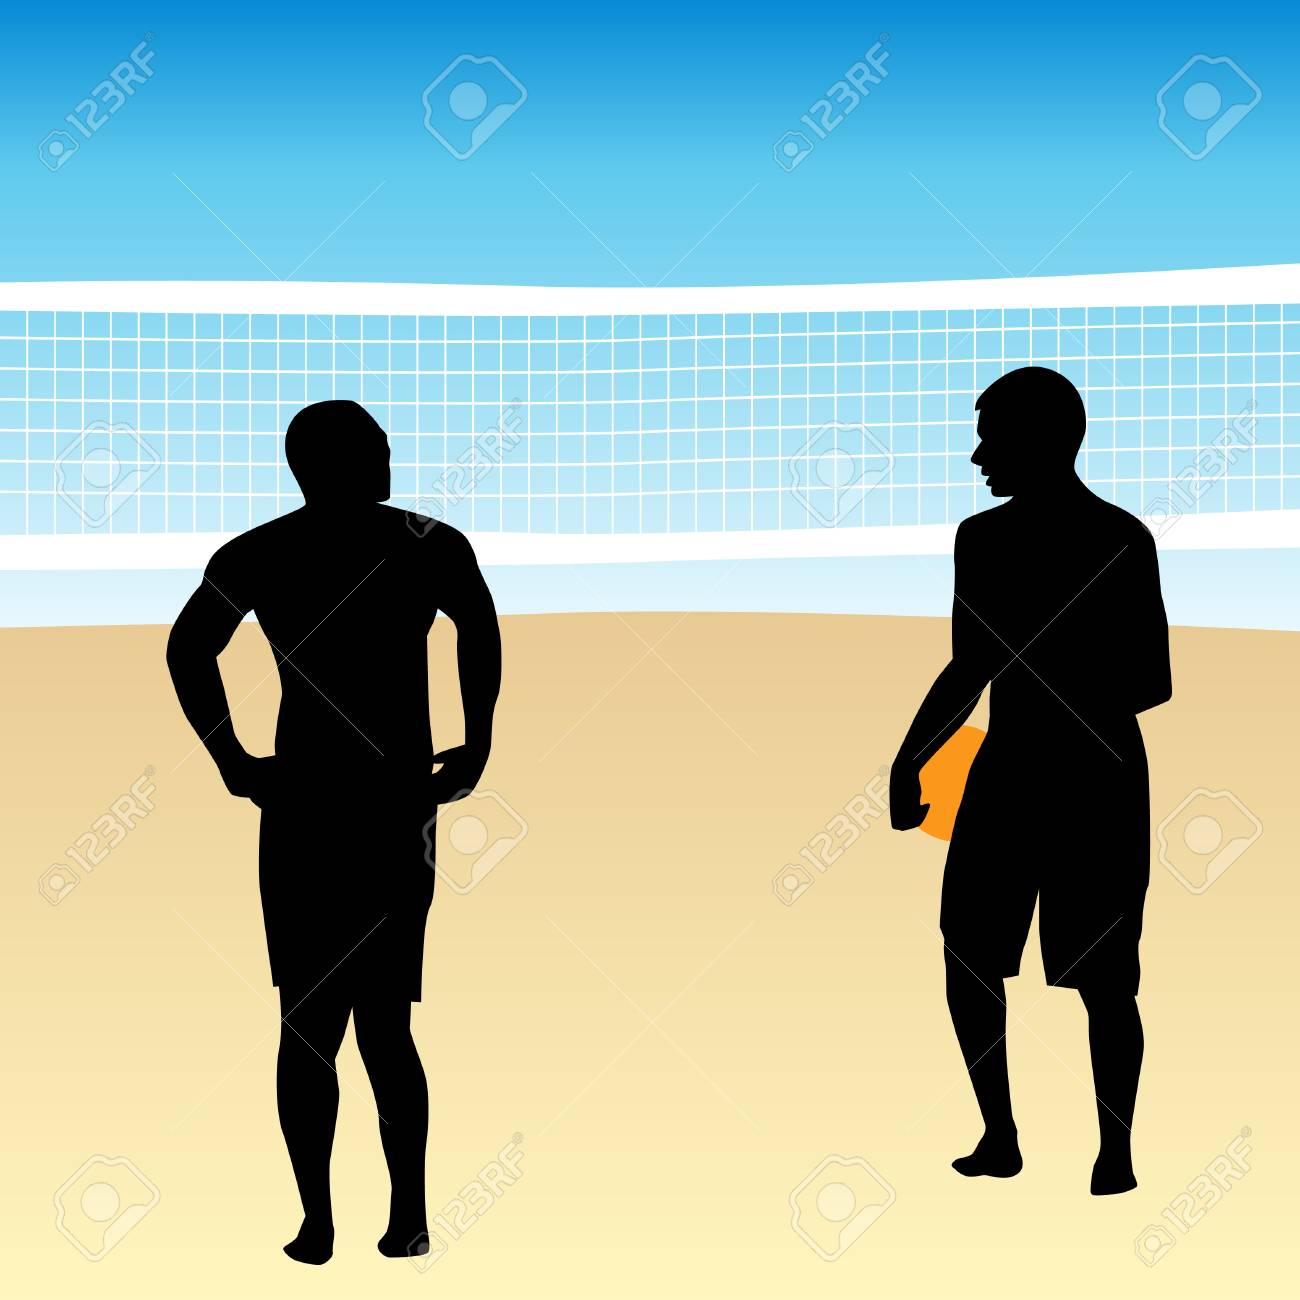 An image of volleyball players. Stock Vector - 7734575